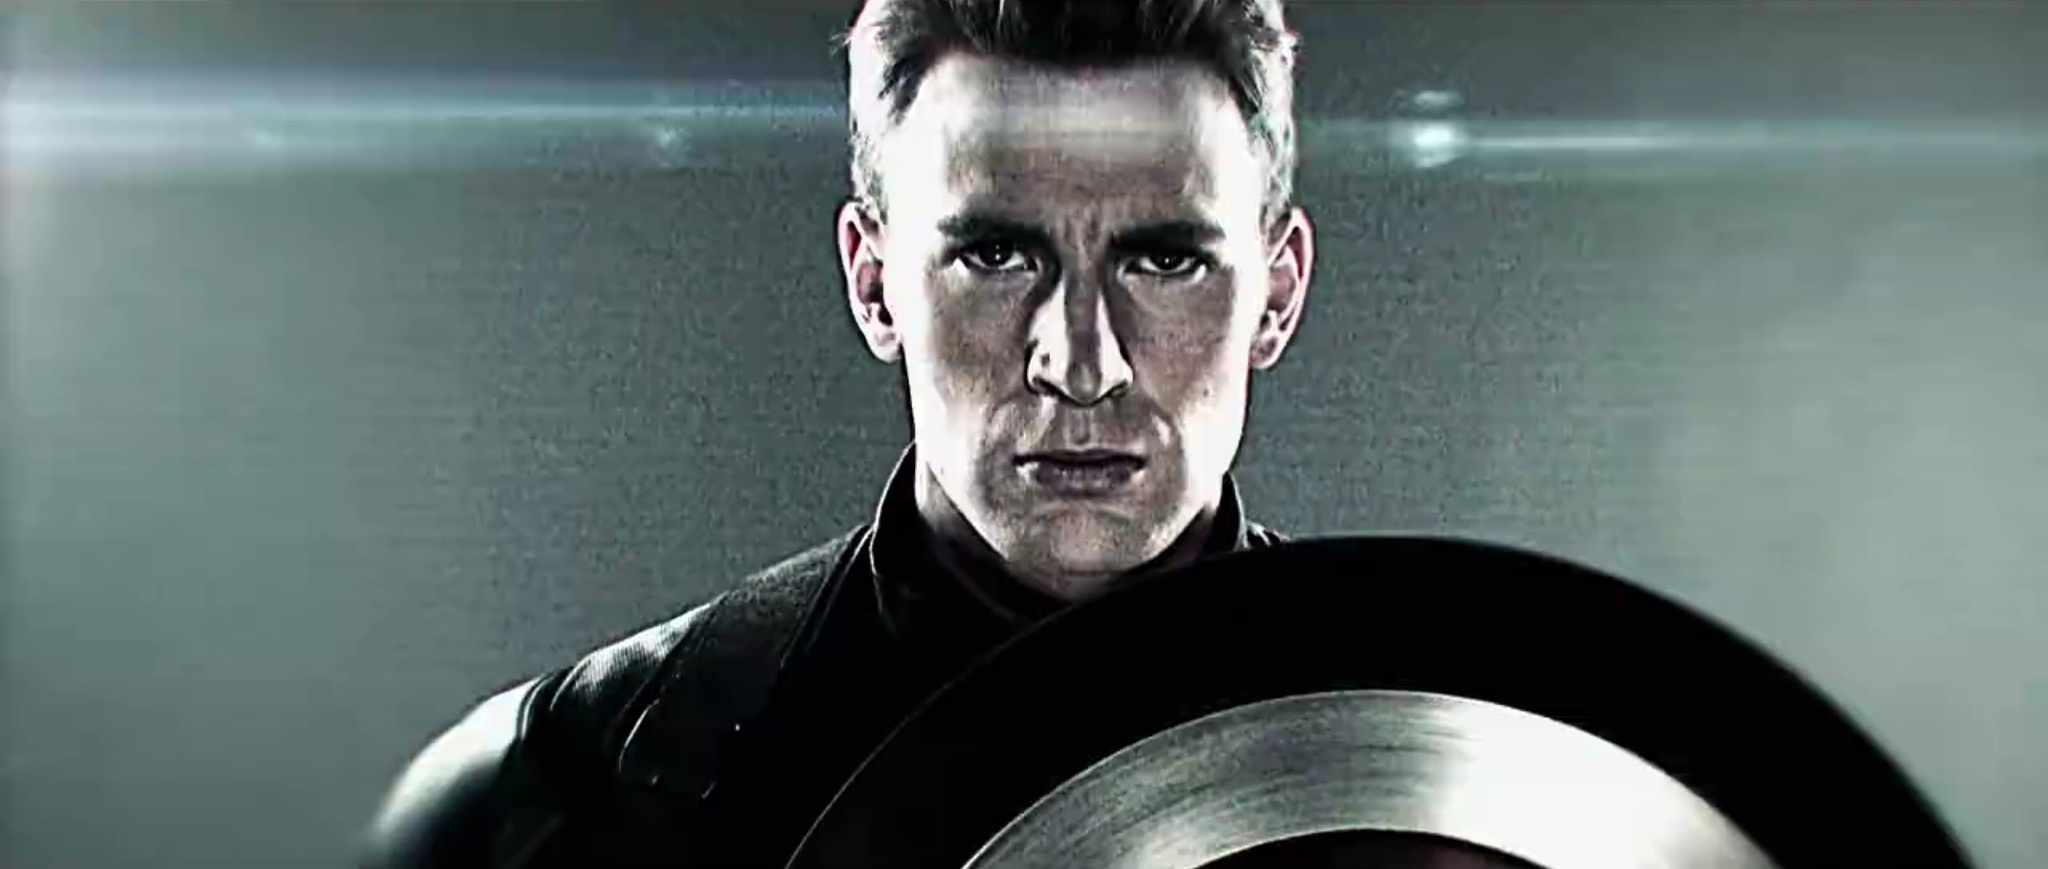 Chris Evans as Steve Rogers in 'Captain America: Civil War'